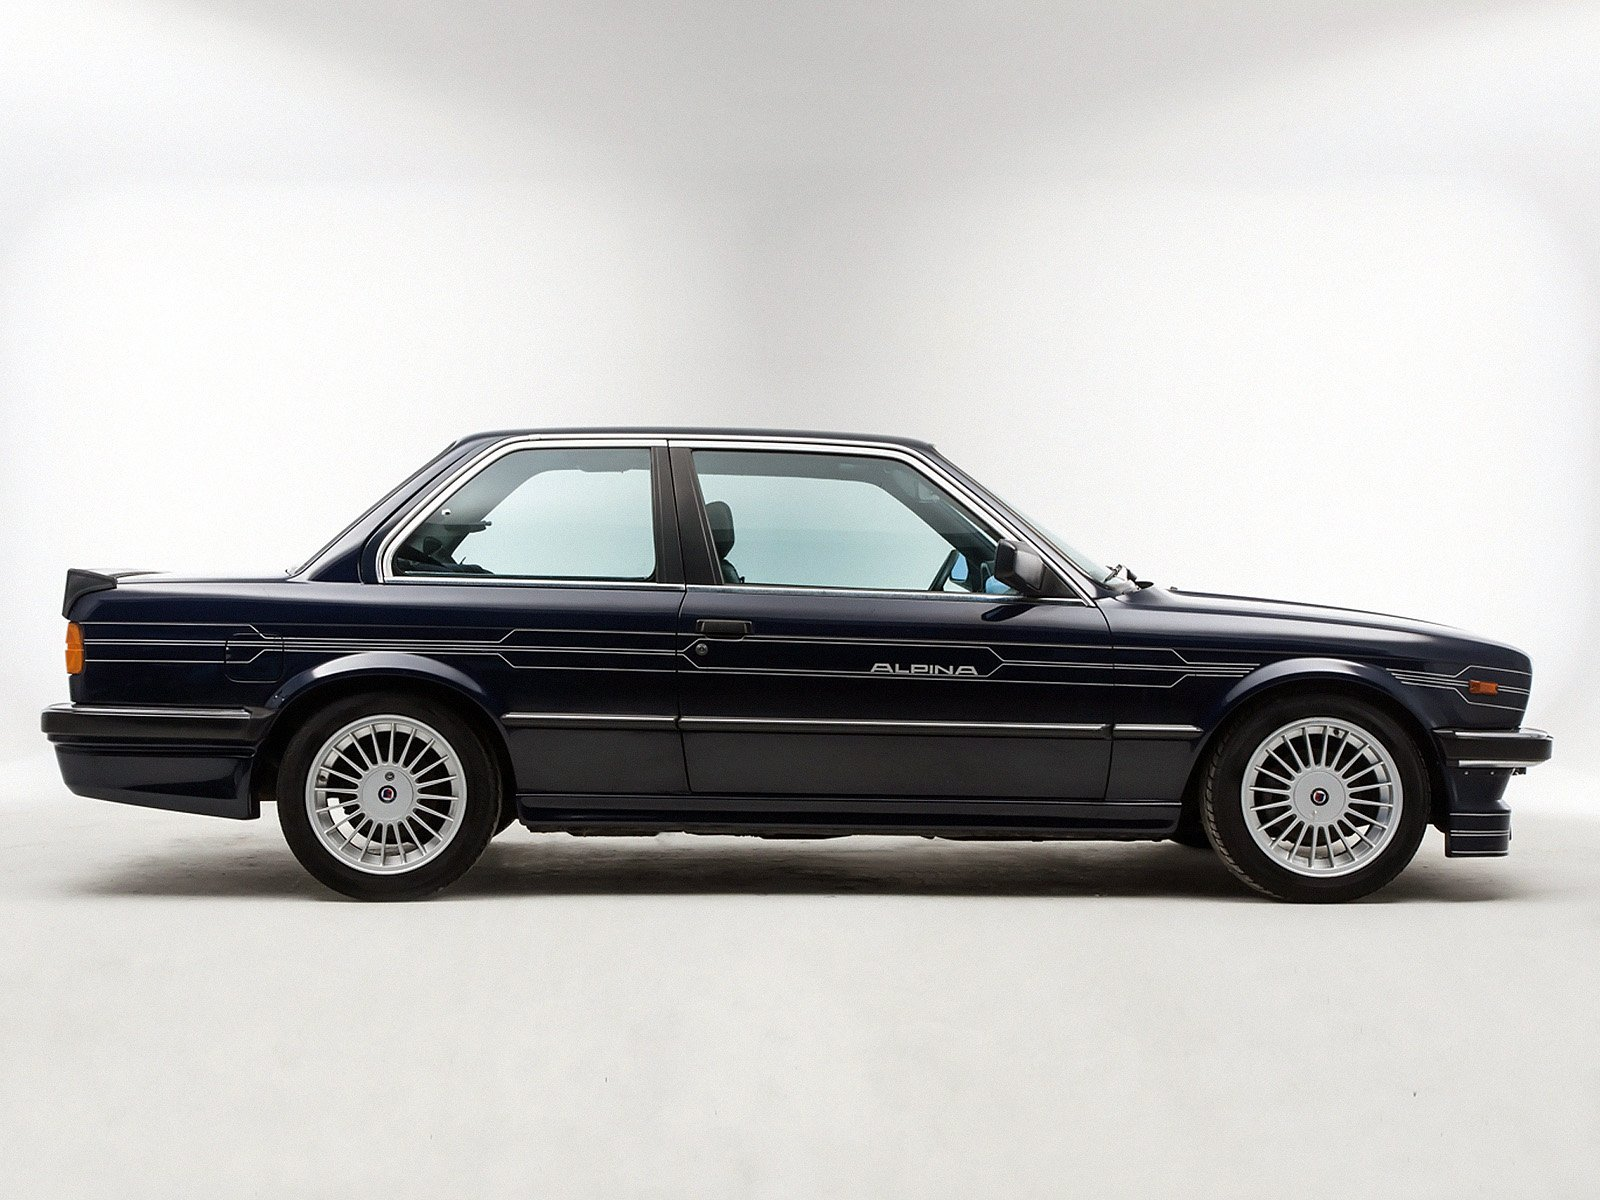 1983 alpina bmw e30 320i f wallpaper 1600x1200 305336 wallpaperup. Black Bedroom Furniture Sets. Home Design Ideas